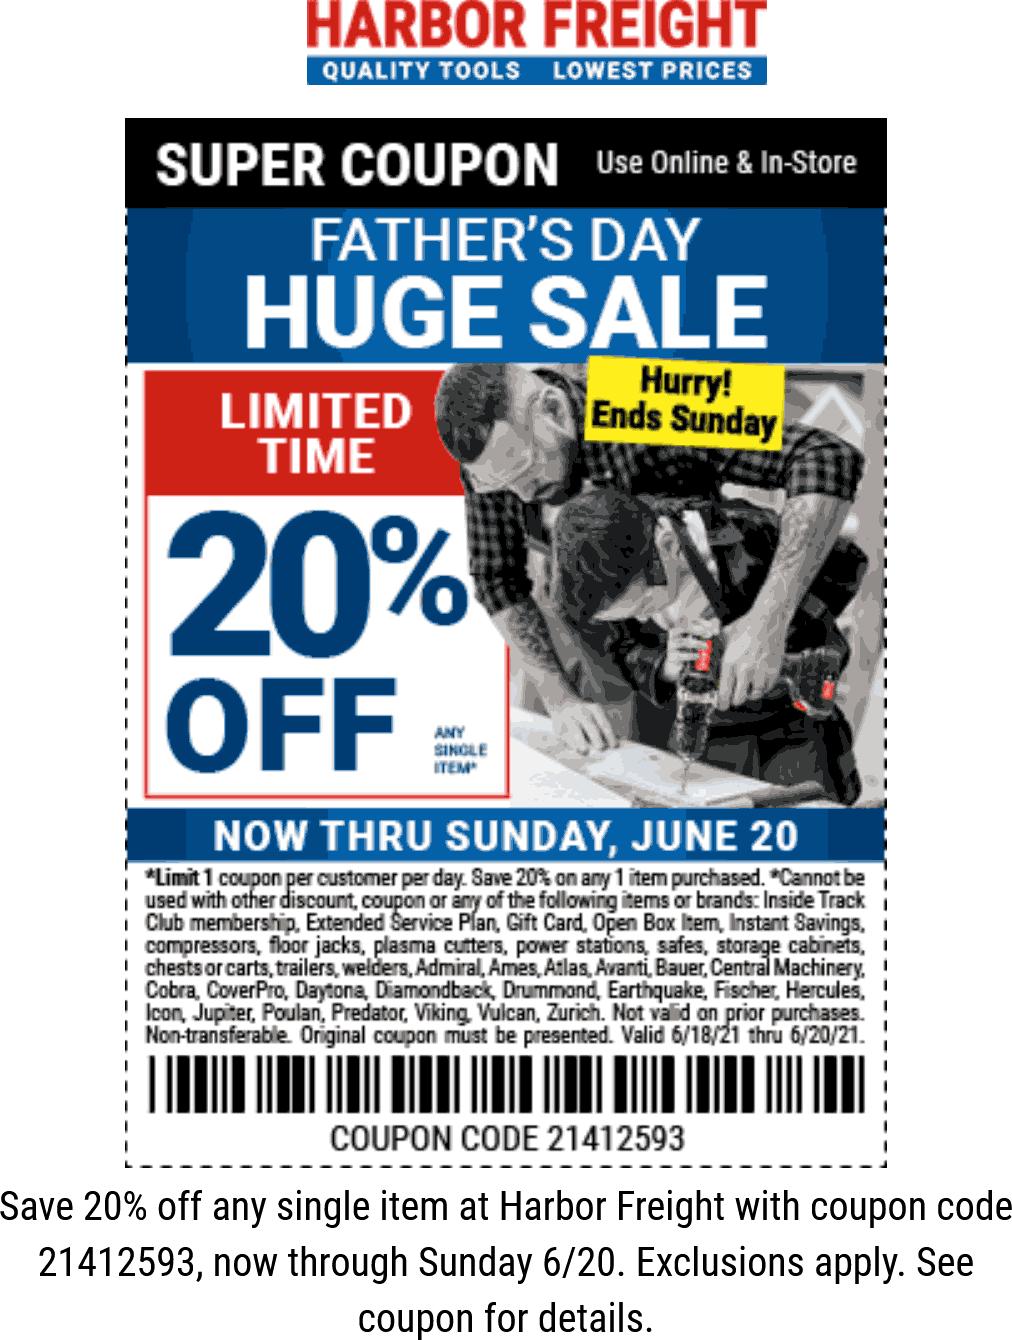 Harbor Freight stores Coupon  20% off a single item today at Harbor Freight Tools, or online via promo code 21412593 #harborfreight